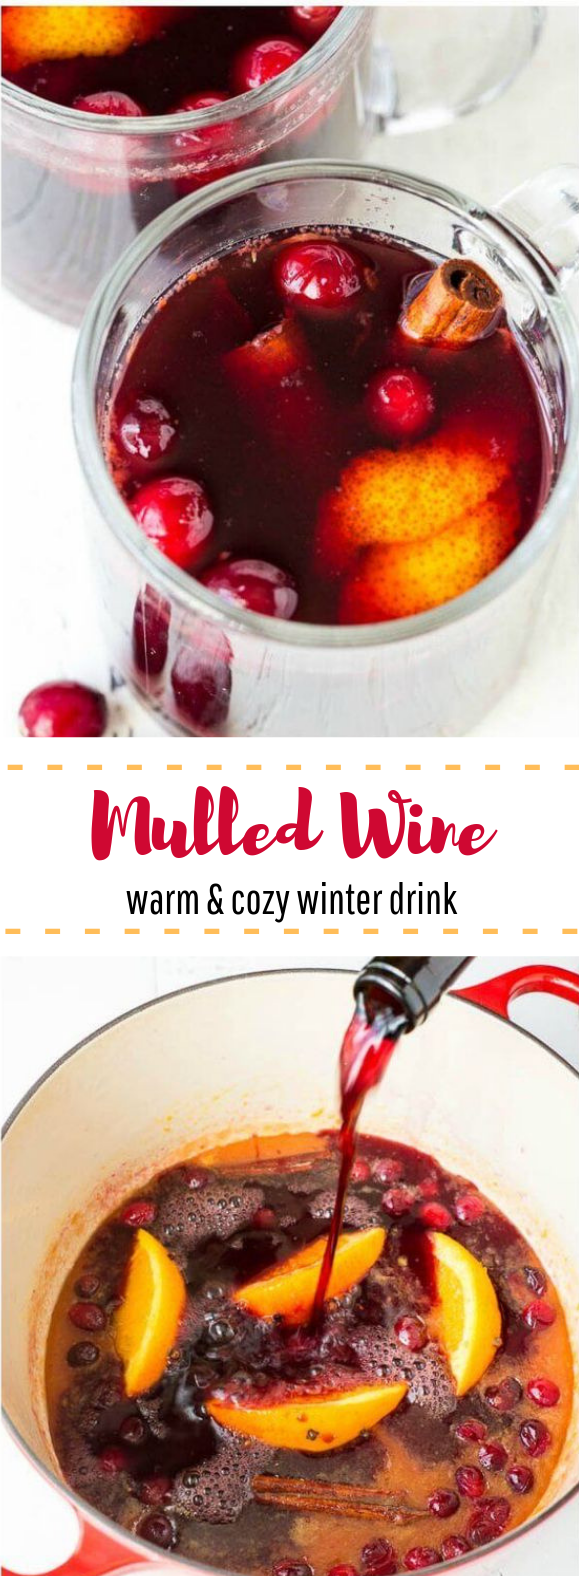 Mulled Wine – Perfect Holiday Party Drink #winter #warm